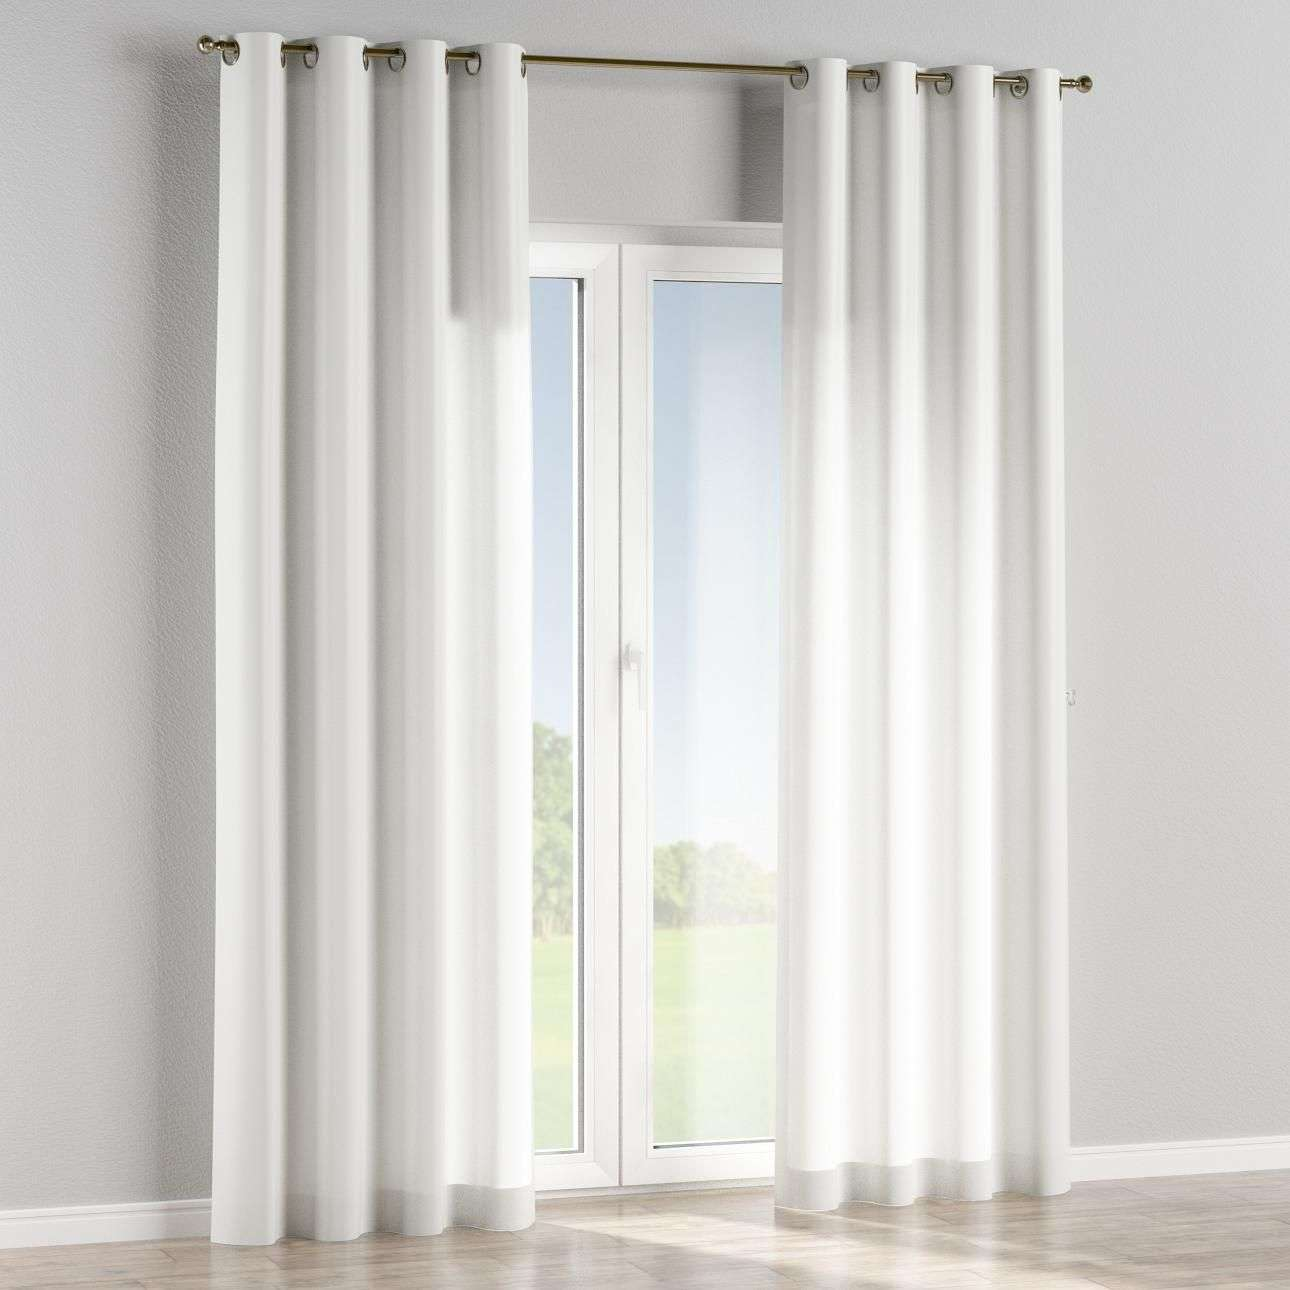 Eyelet lined curtains in collection Ashley, fabric: 137-49